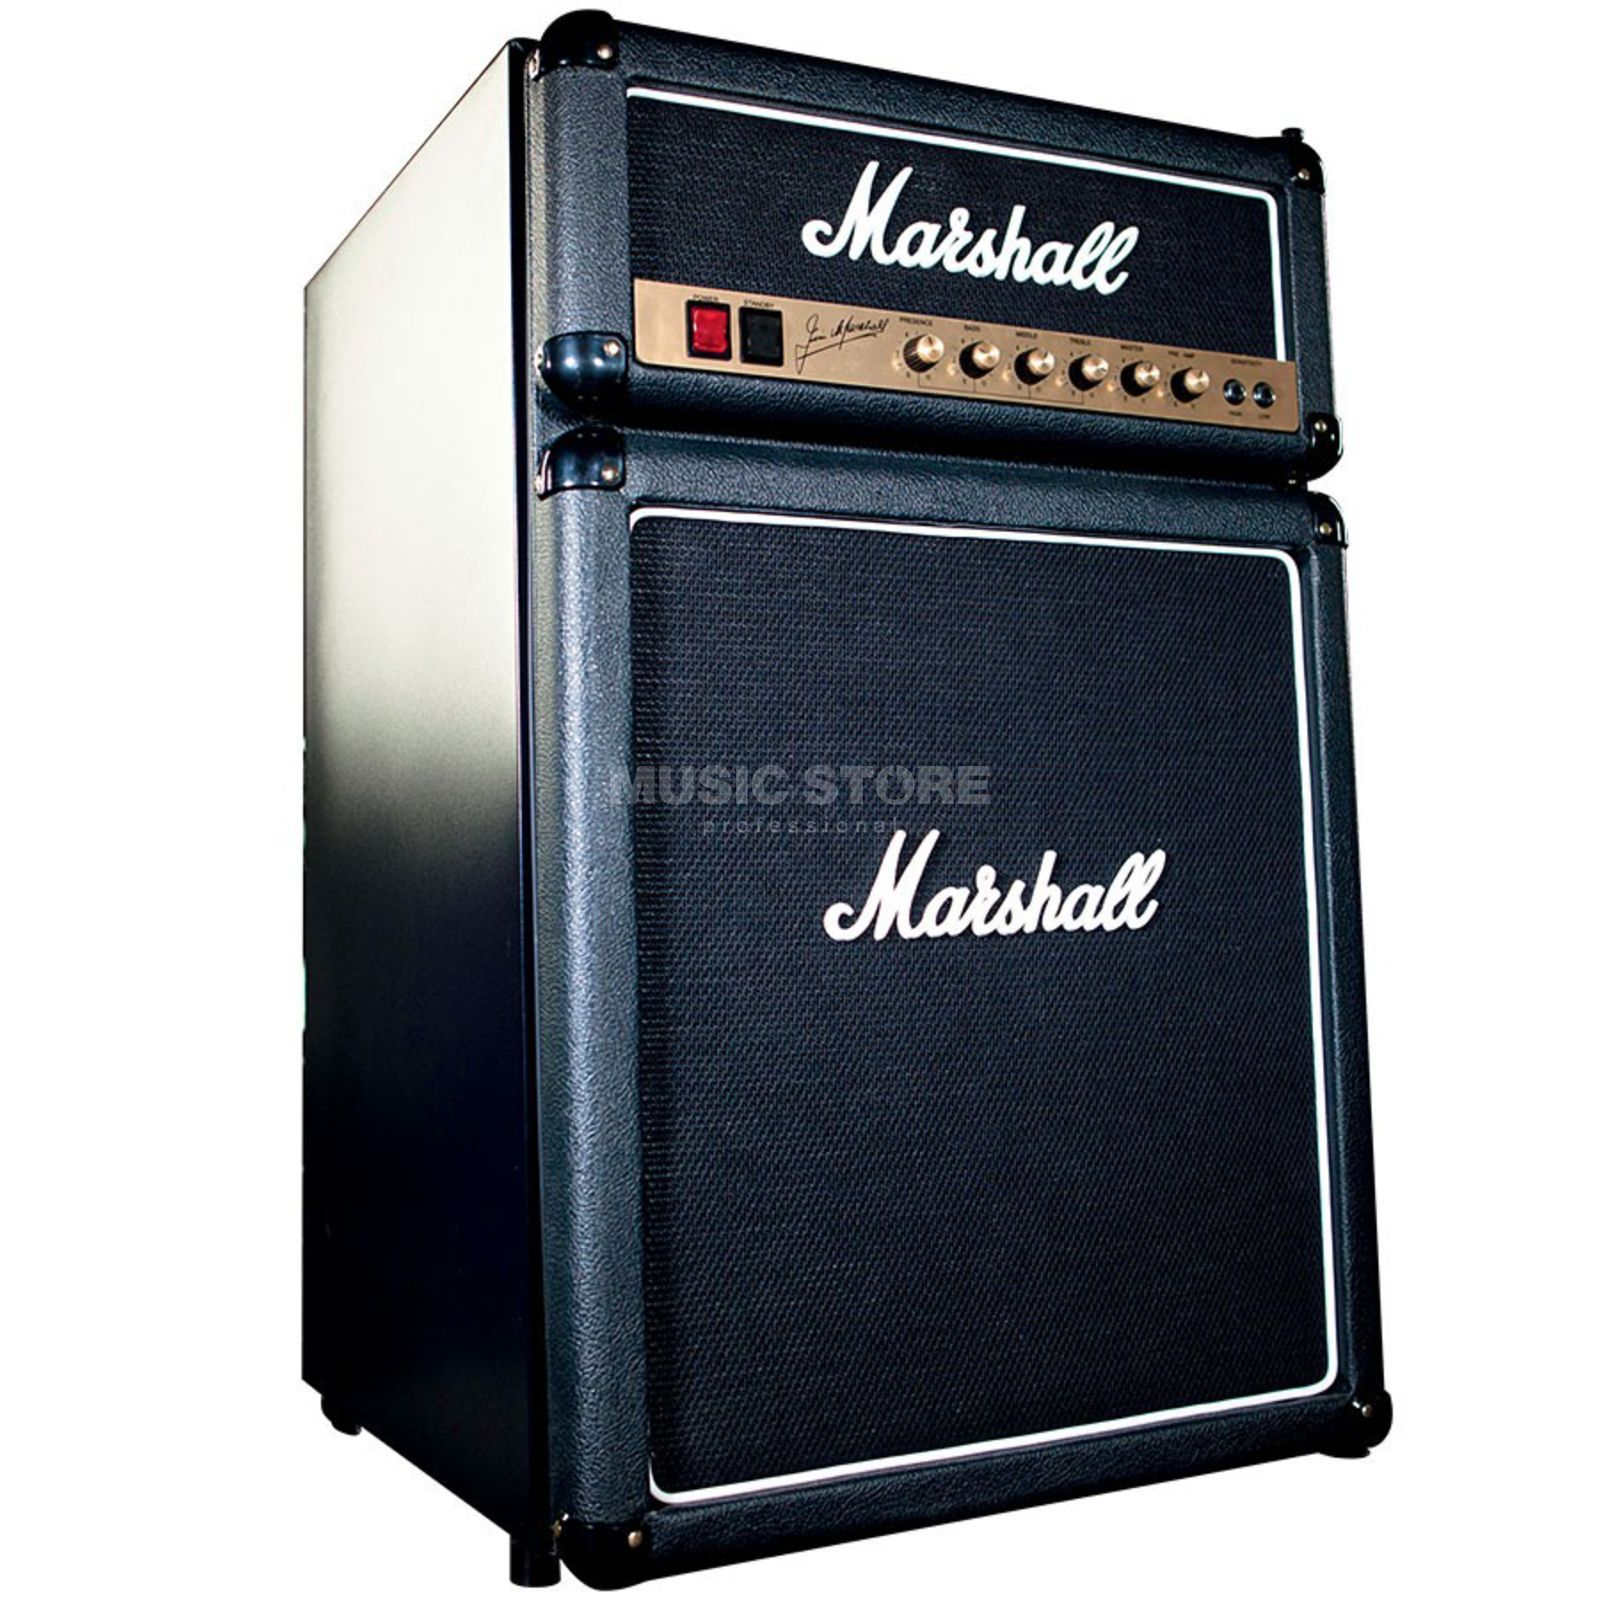 Marshall Fridge Liwithed Edition K³hlschrank Halfstack- Design Product Image